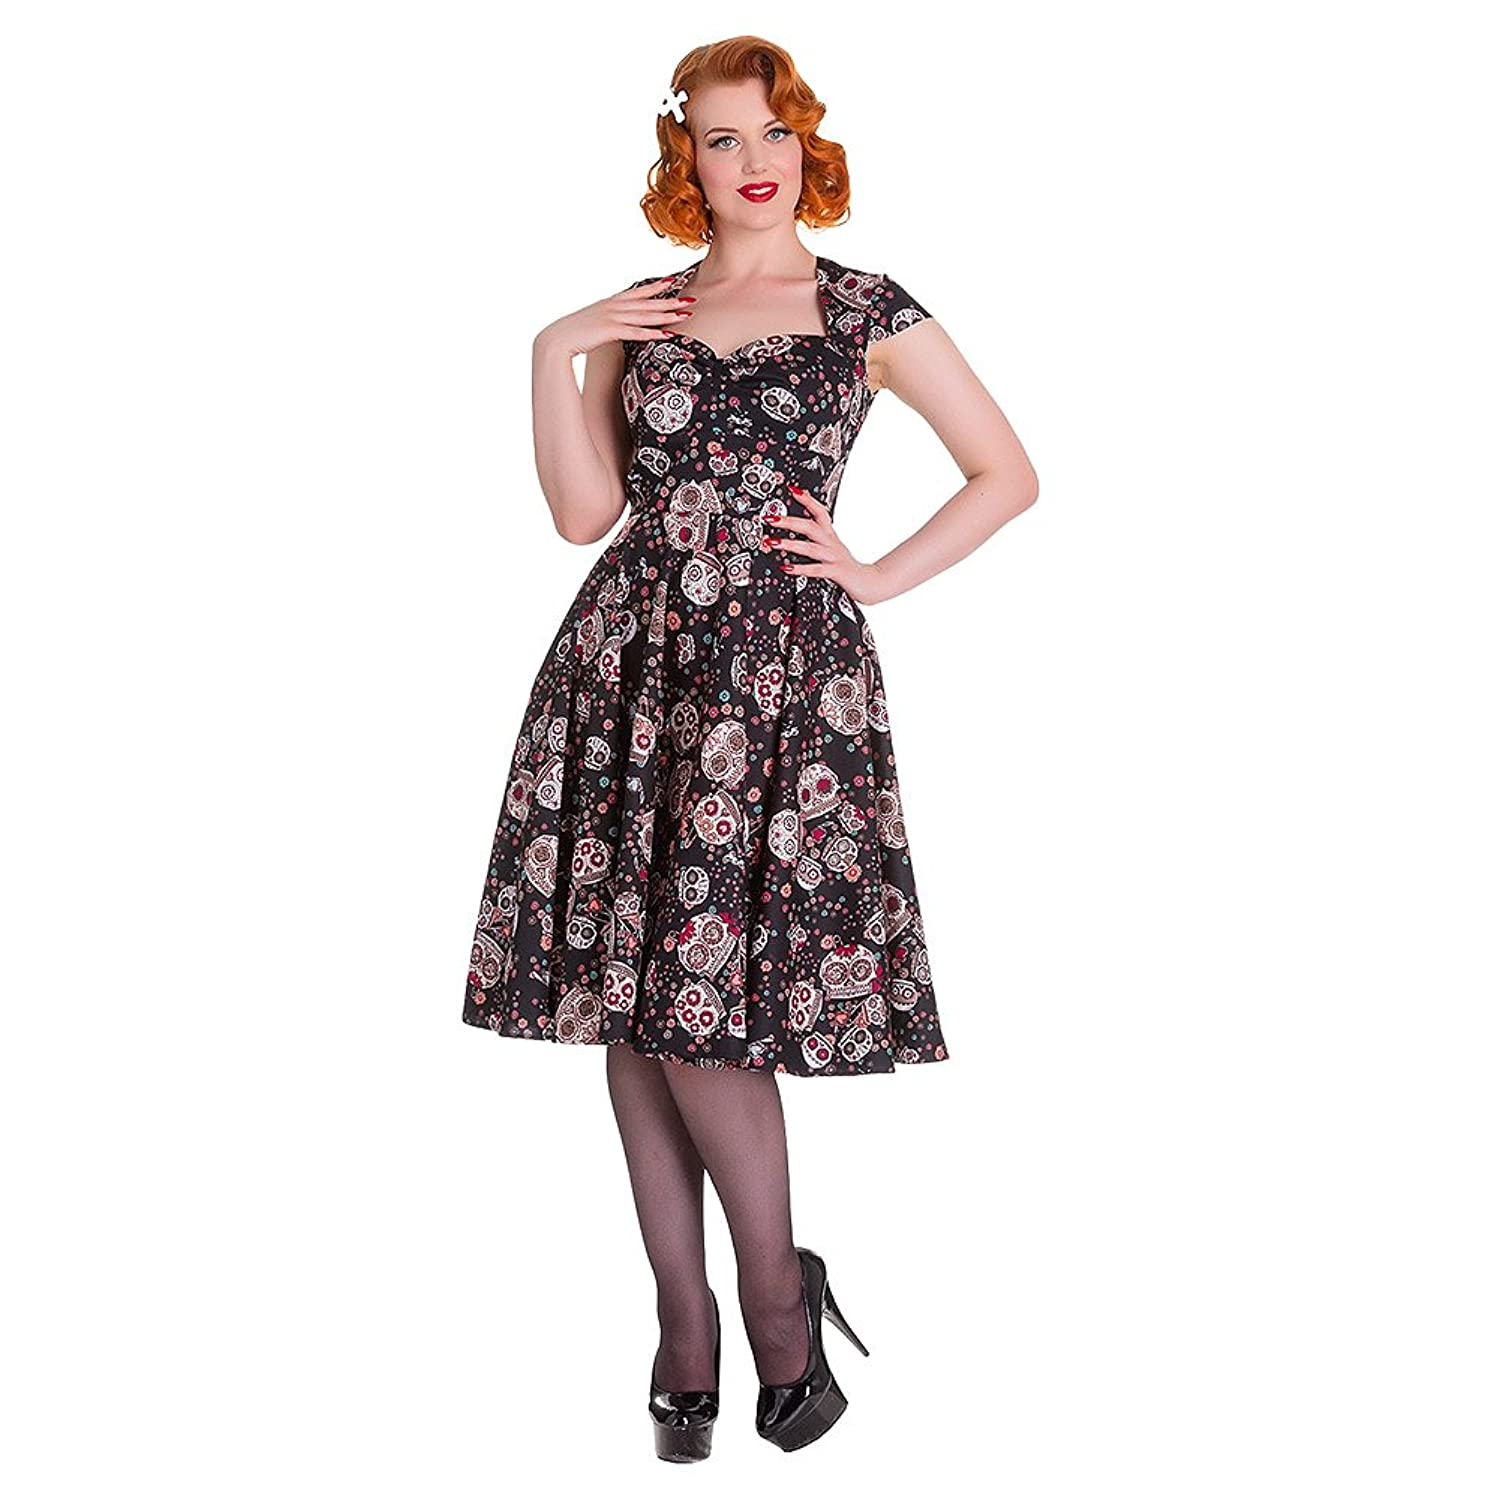 HELL BUNNY Pinup 50s Dress SASHA Love Skull Sugar ~ Black All Sizes